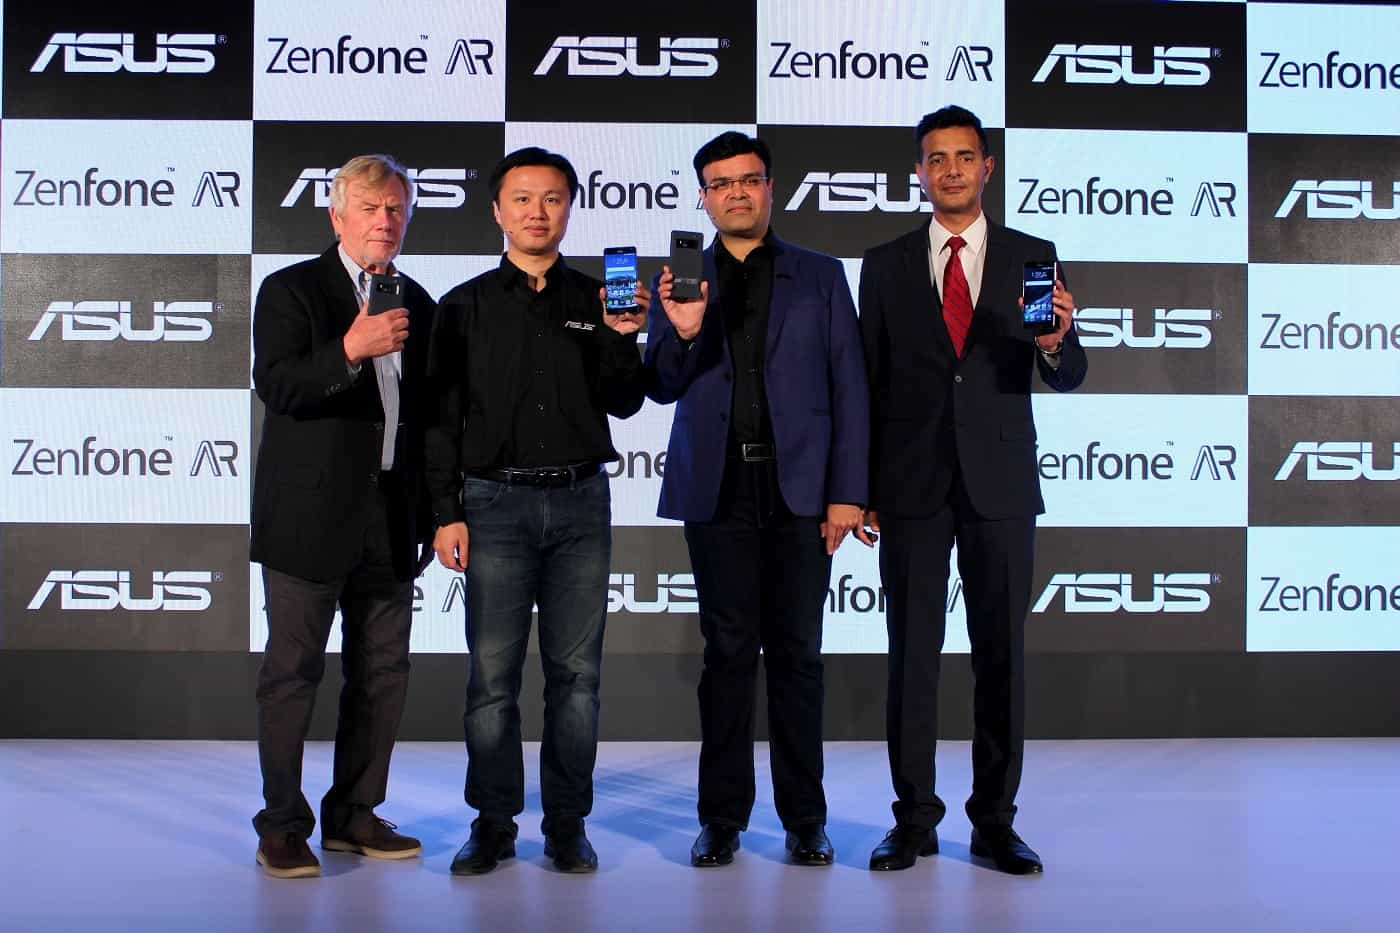 Asus ZenFone AR Launched - World's first Tango & Daydream Ready Smartphone 2